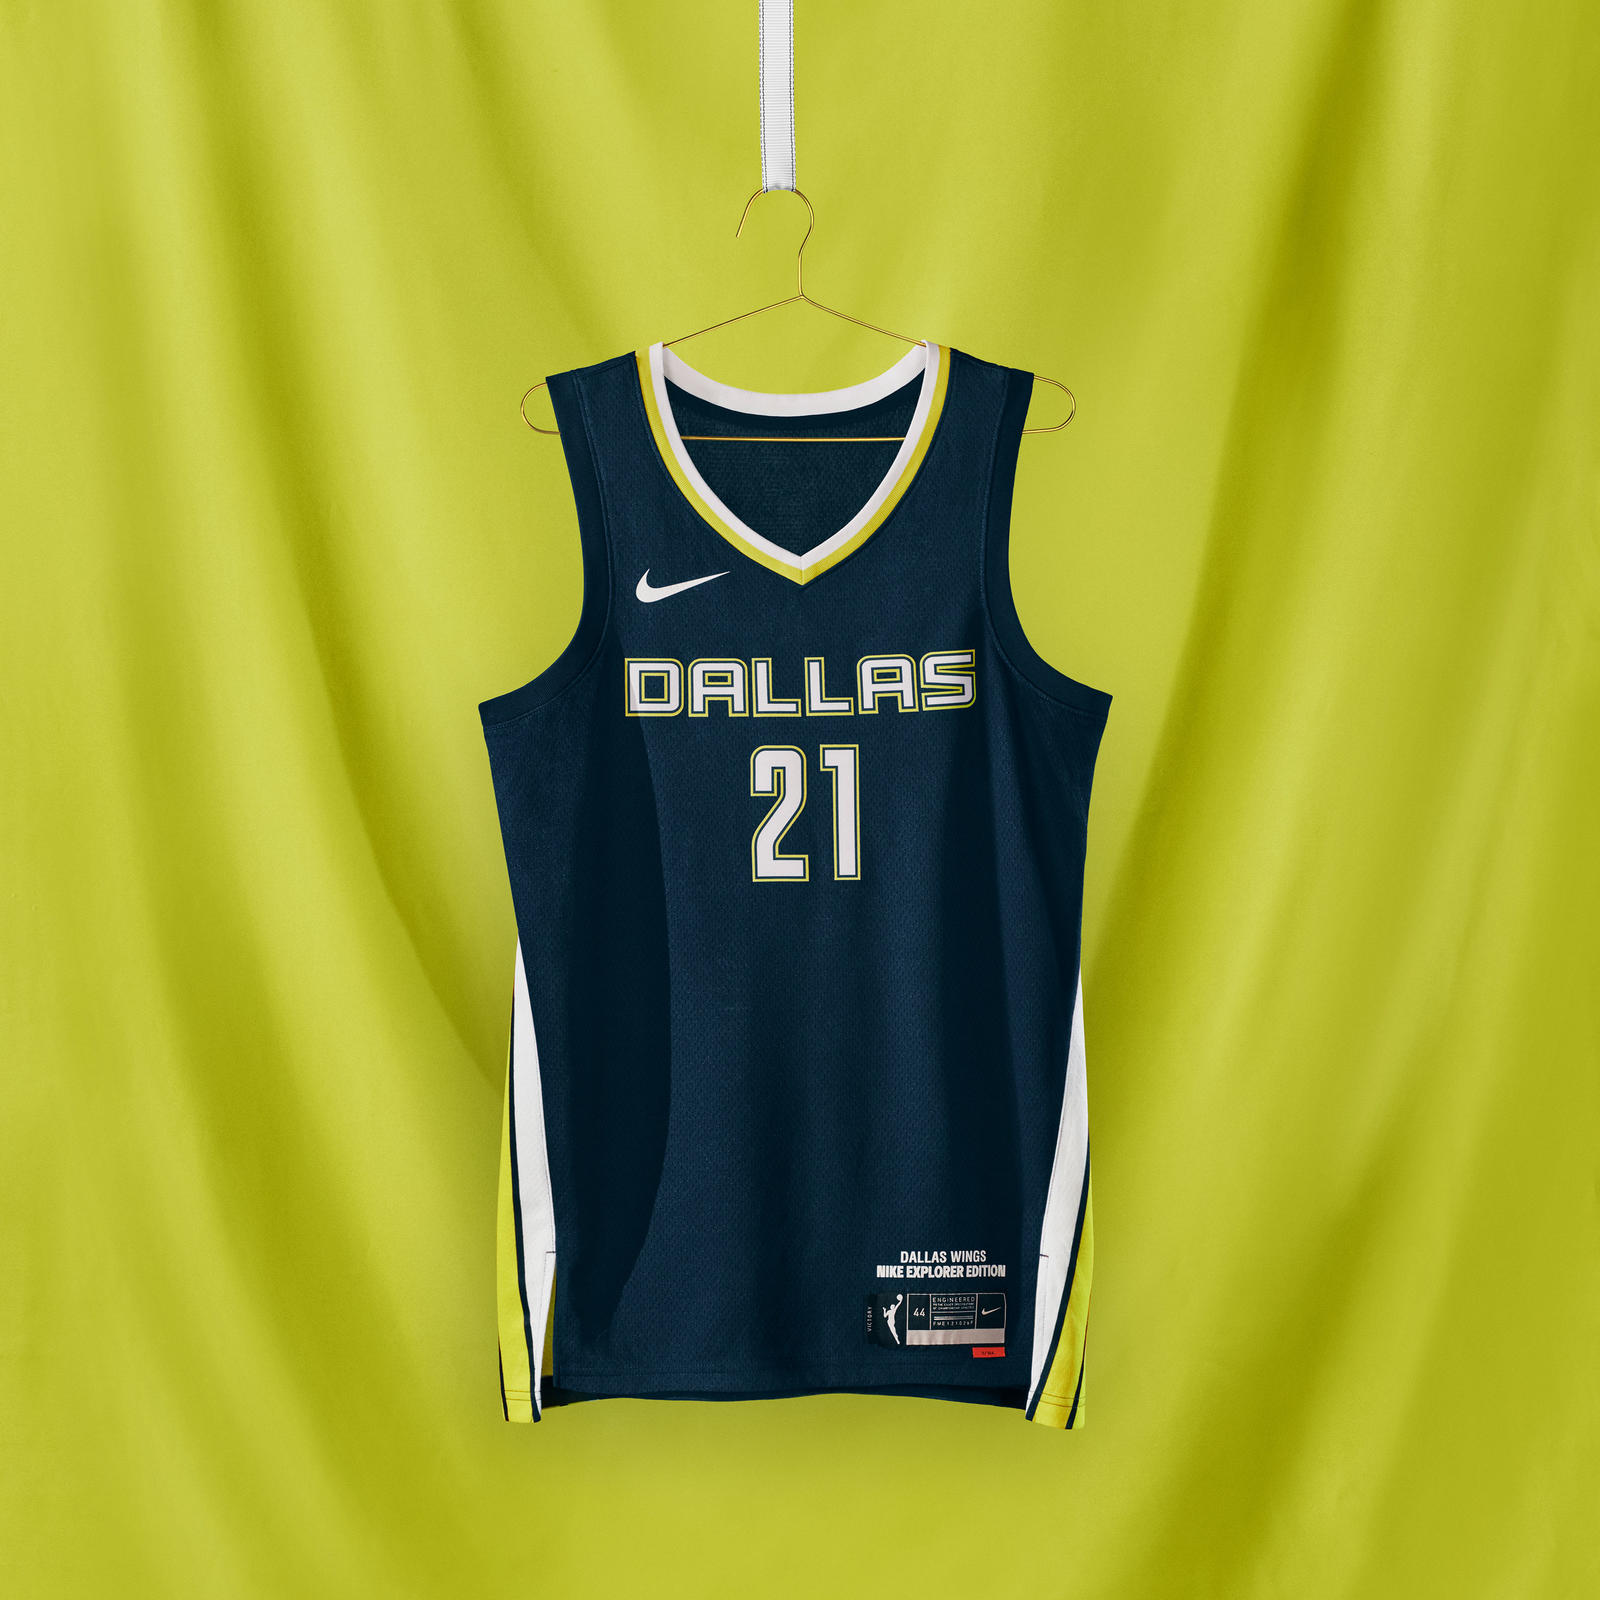 Nike WNBA 2021 Uniform Editions  1